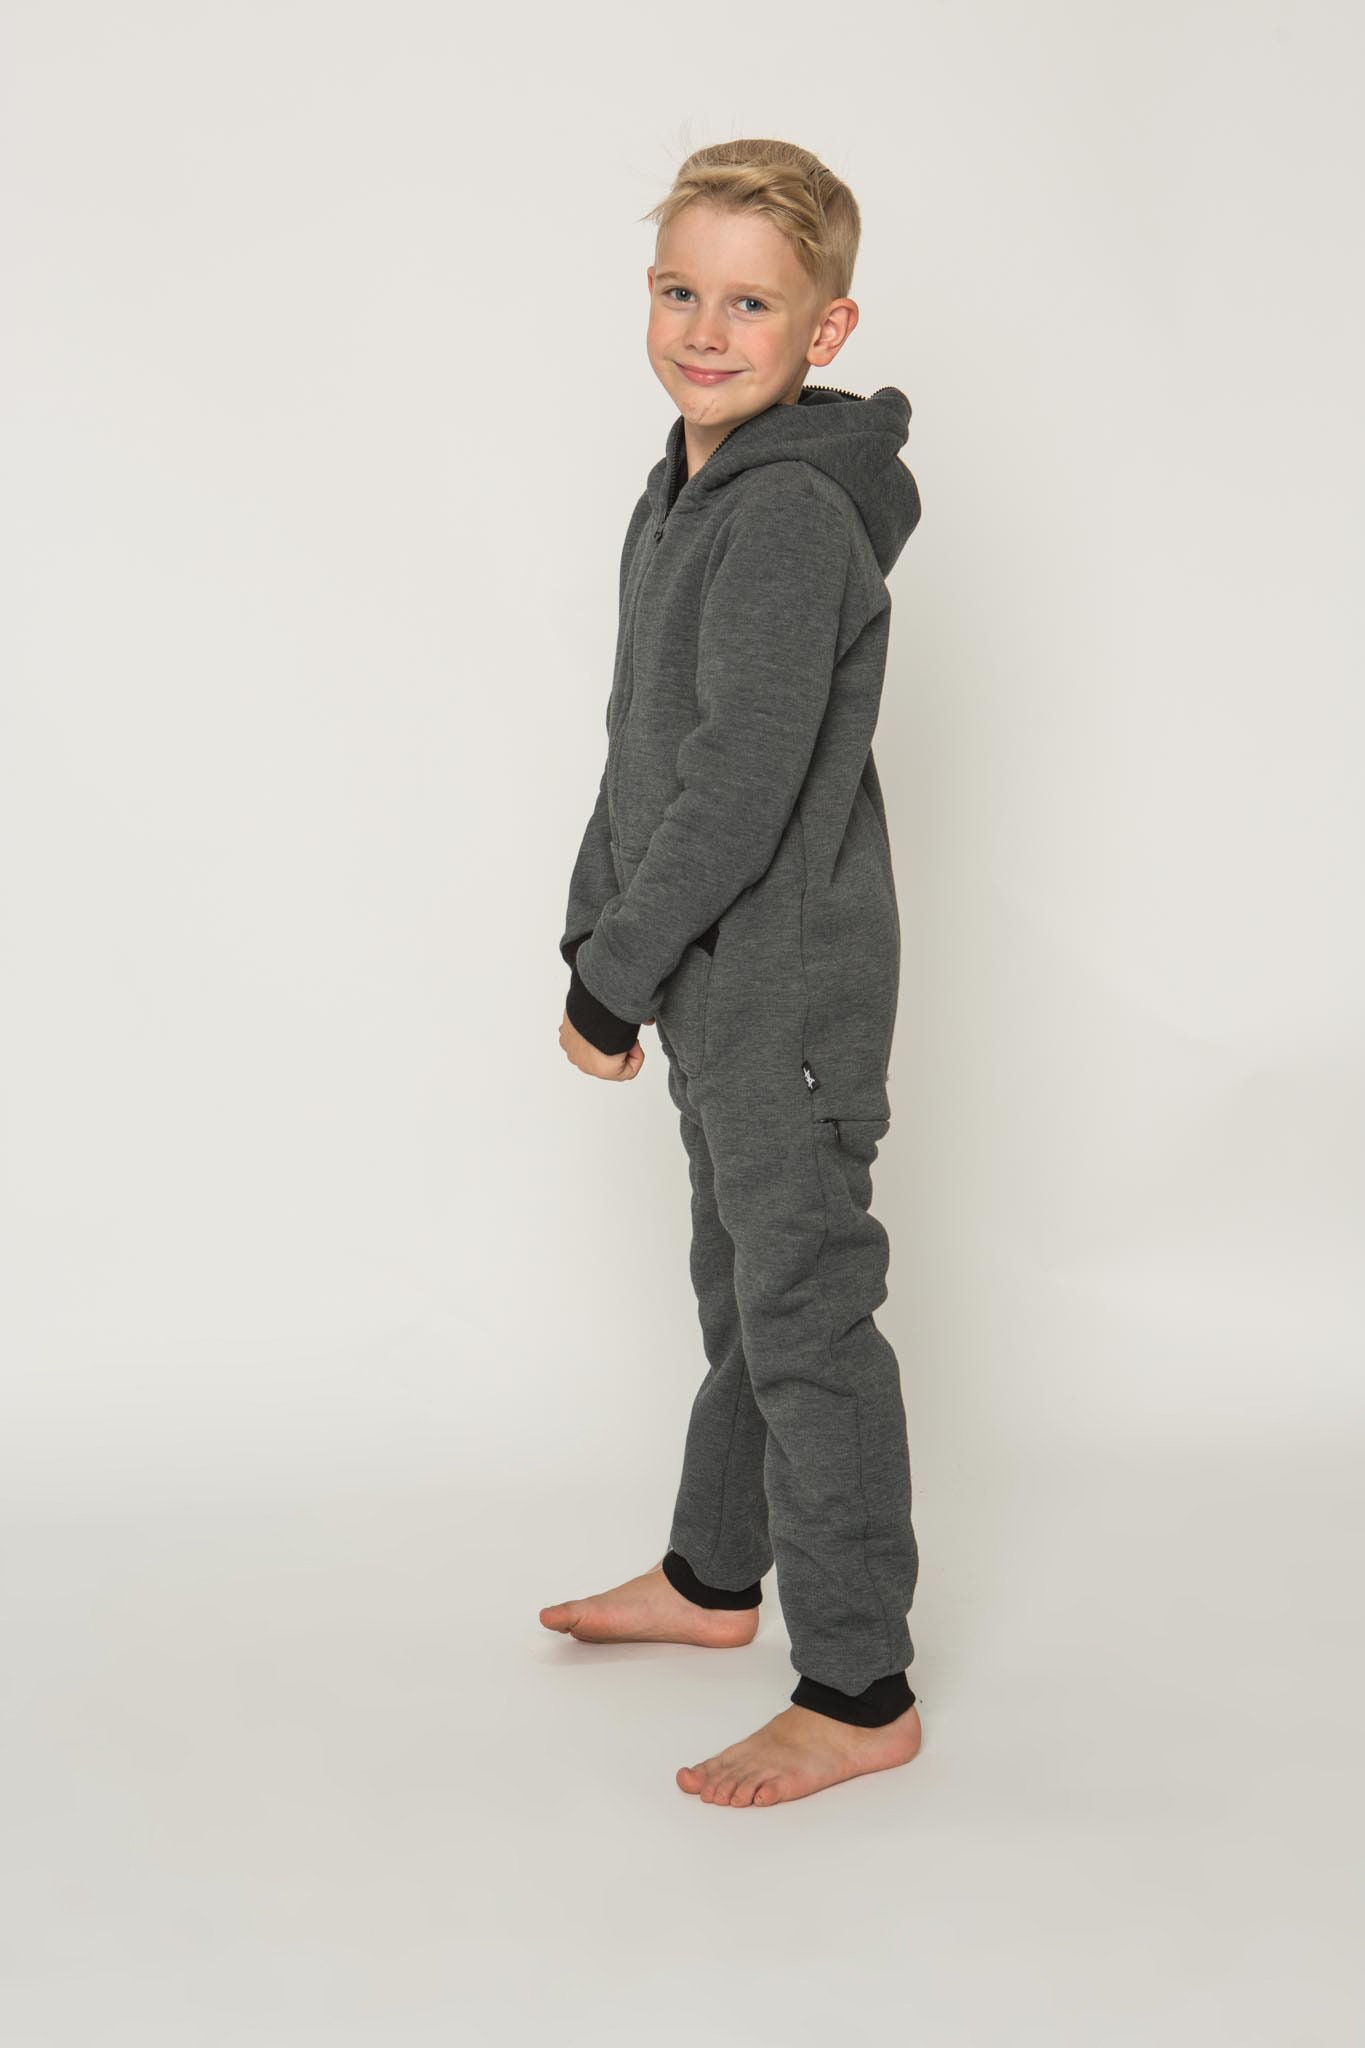 f462ce25815e SOFA KILLER dark grey unisex kids onesie with zipper in the